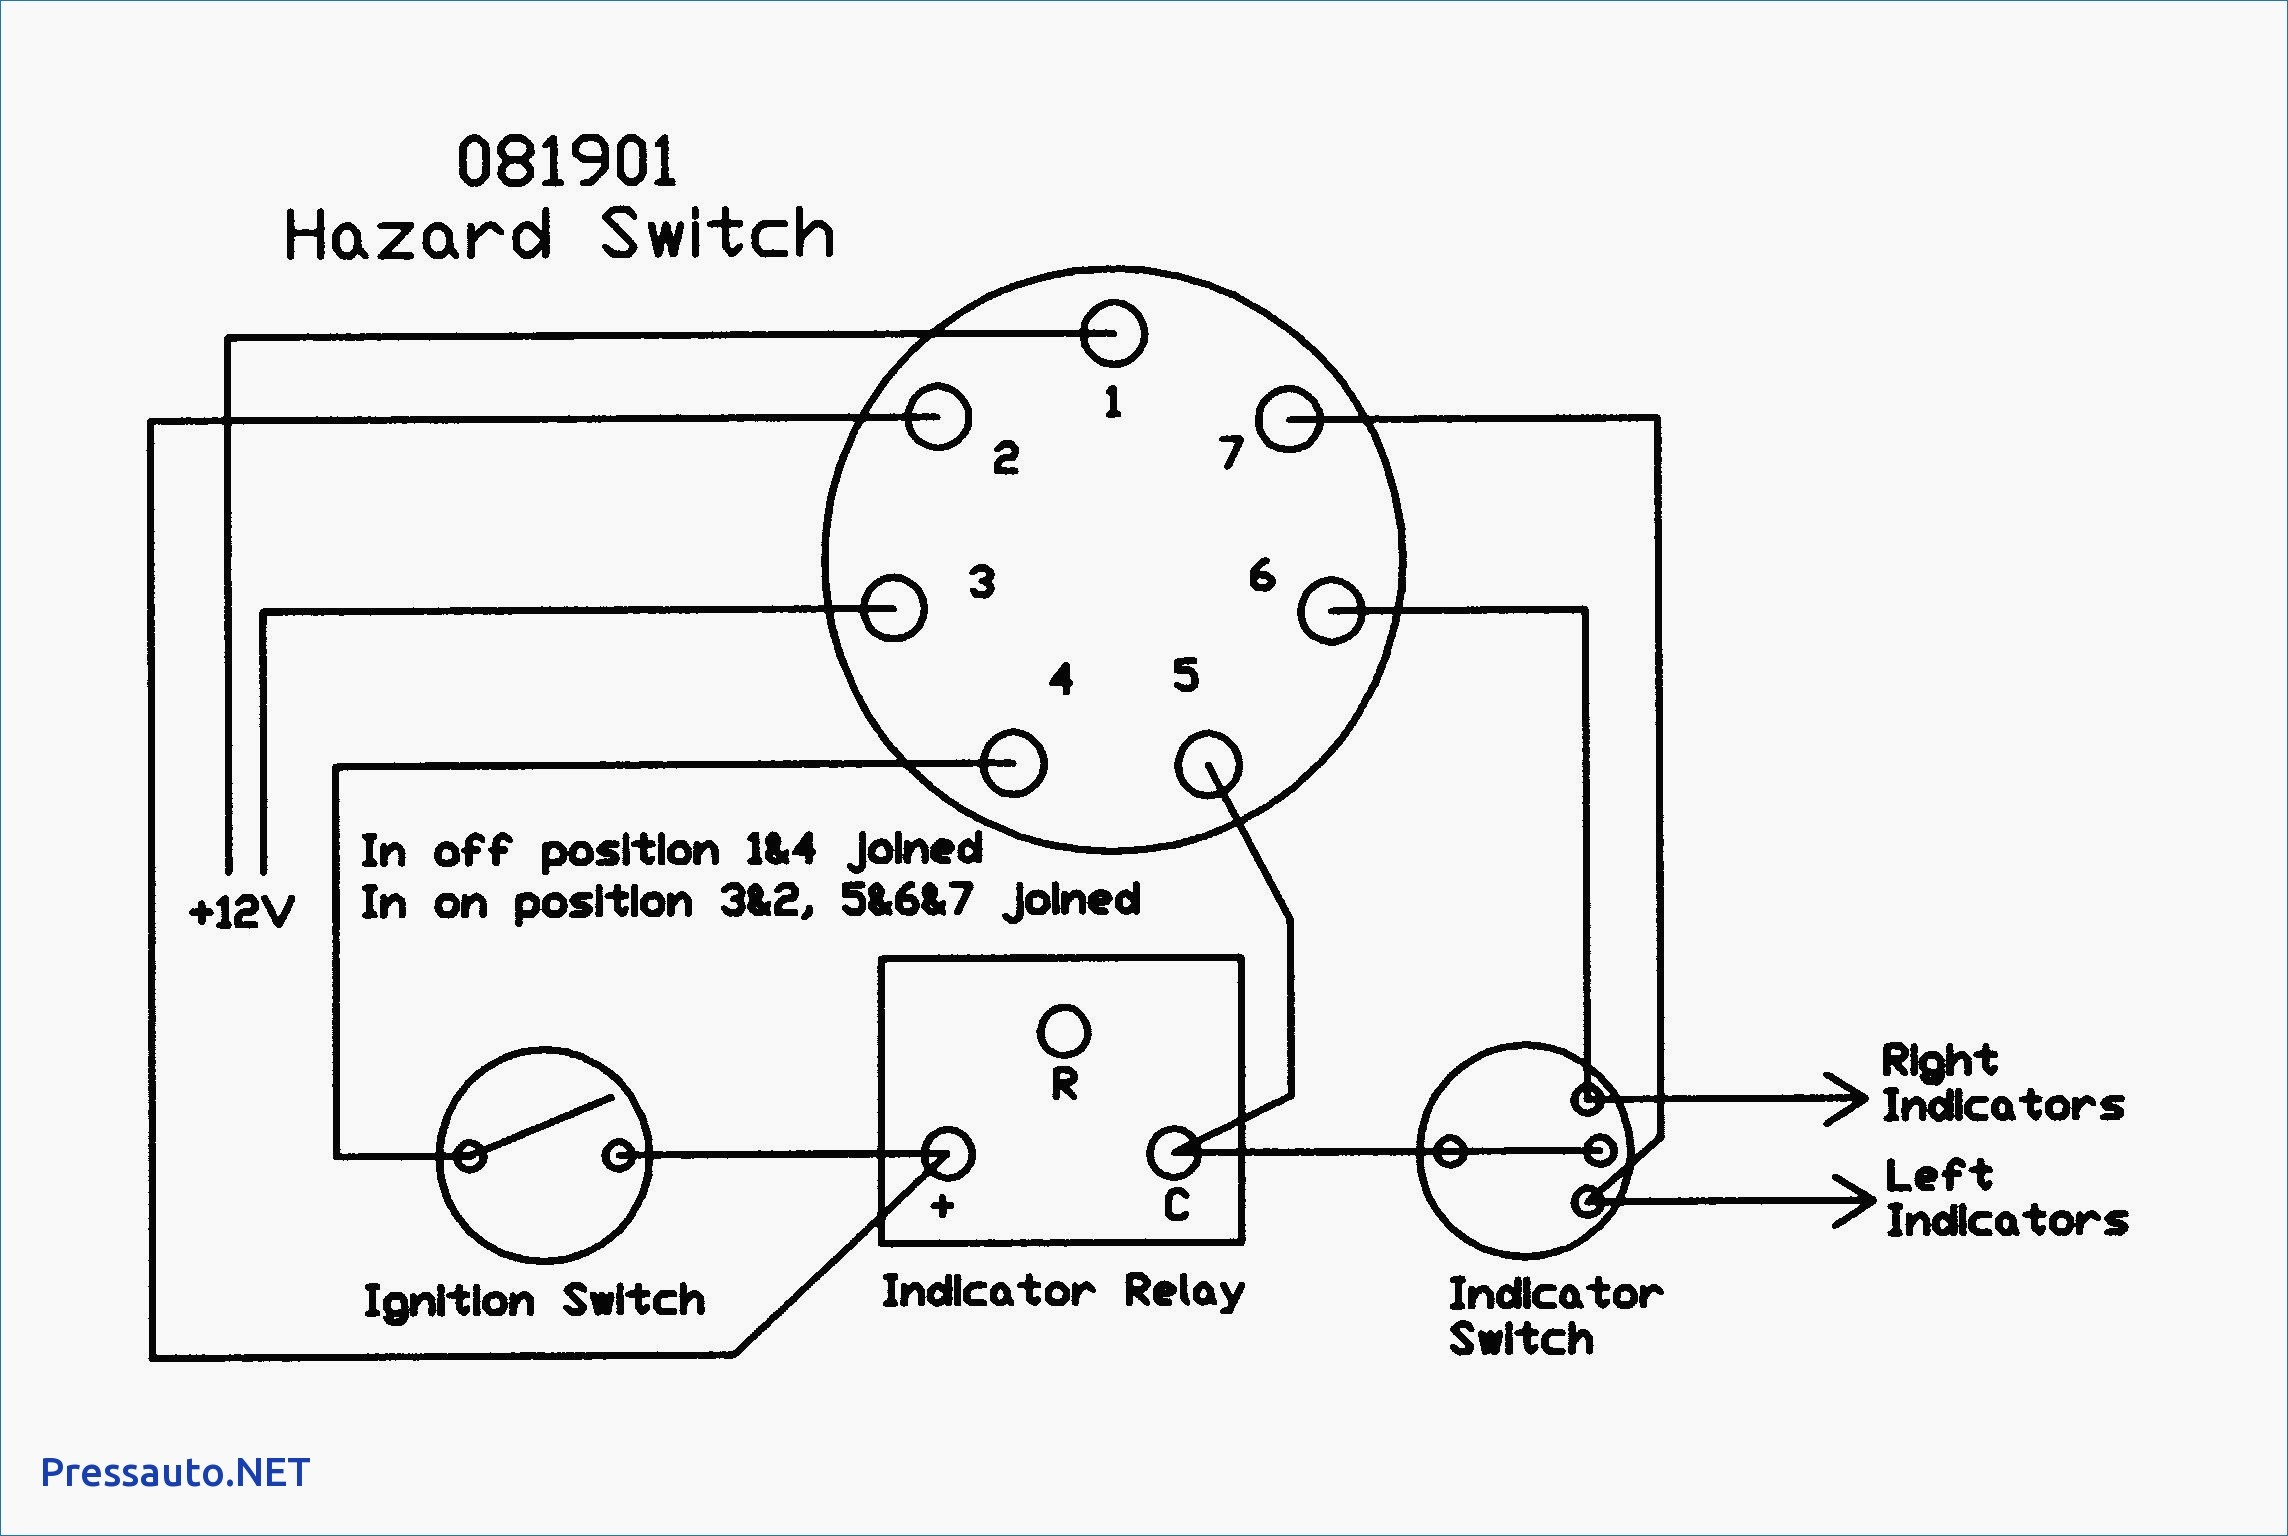 ... Wiring Diagram 1979 ford F150 Ignition Switch and ford Ignition Of.  Related Post